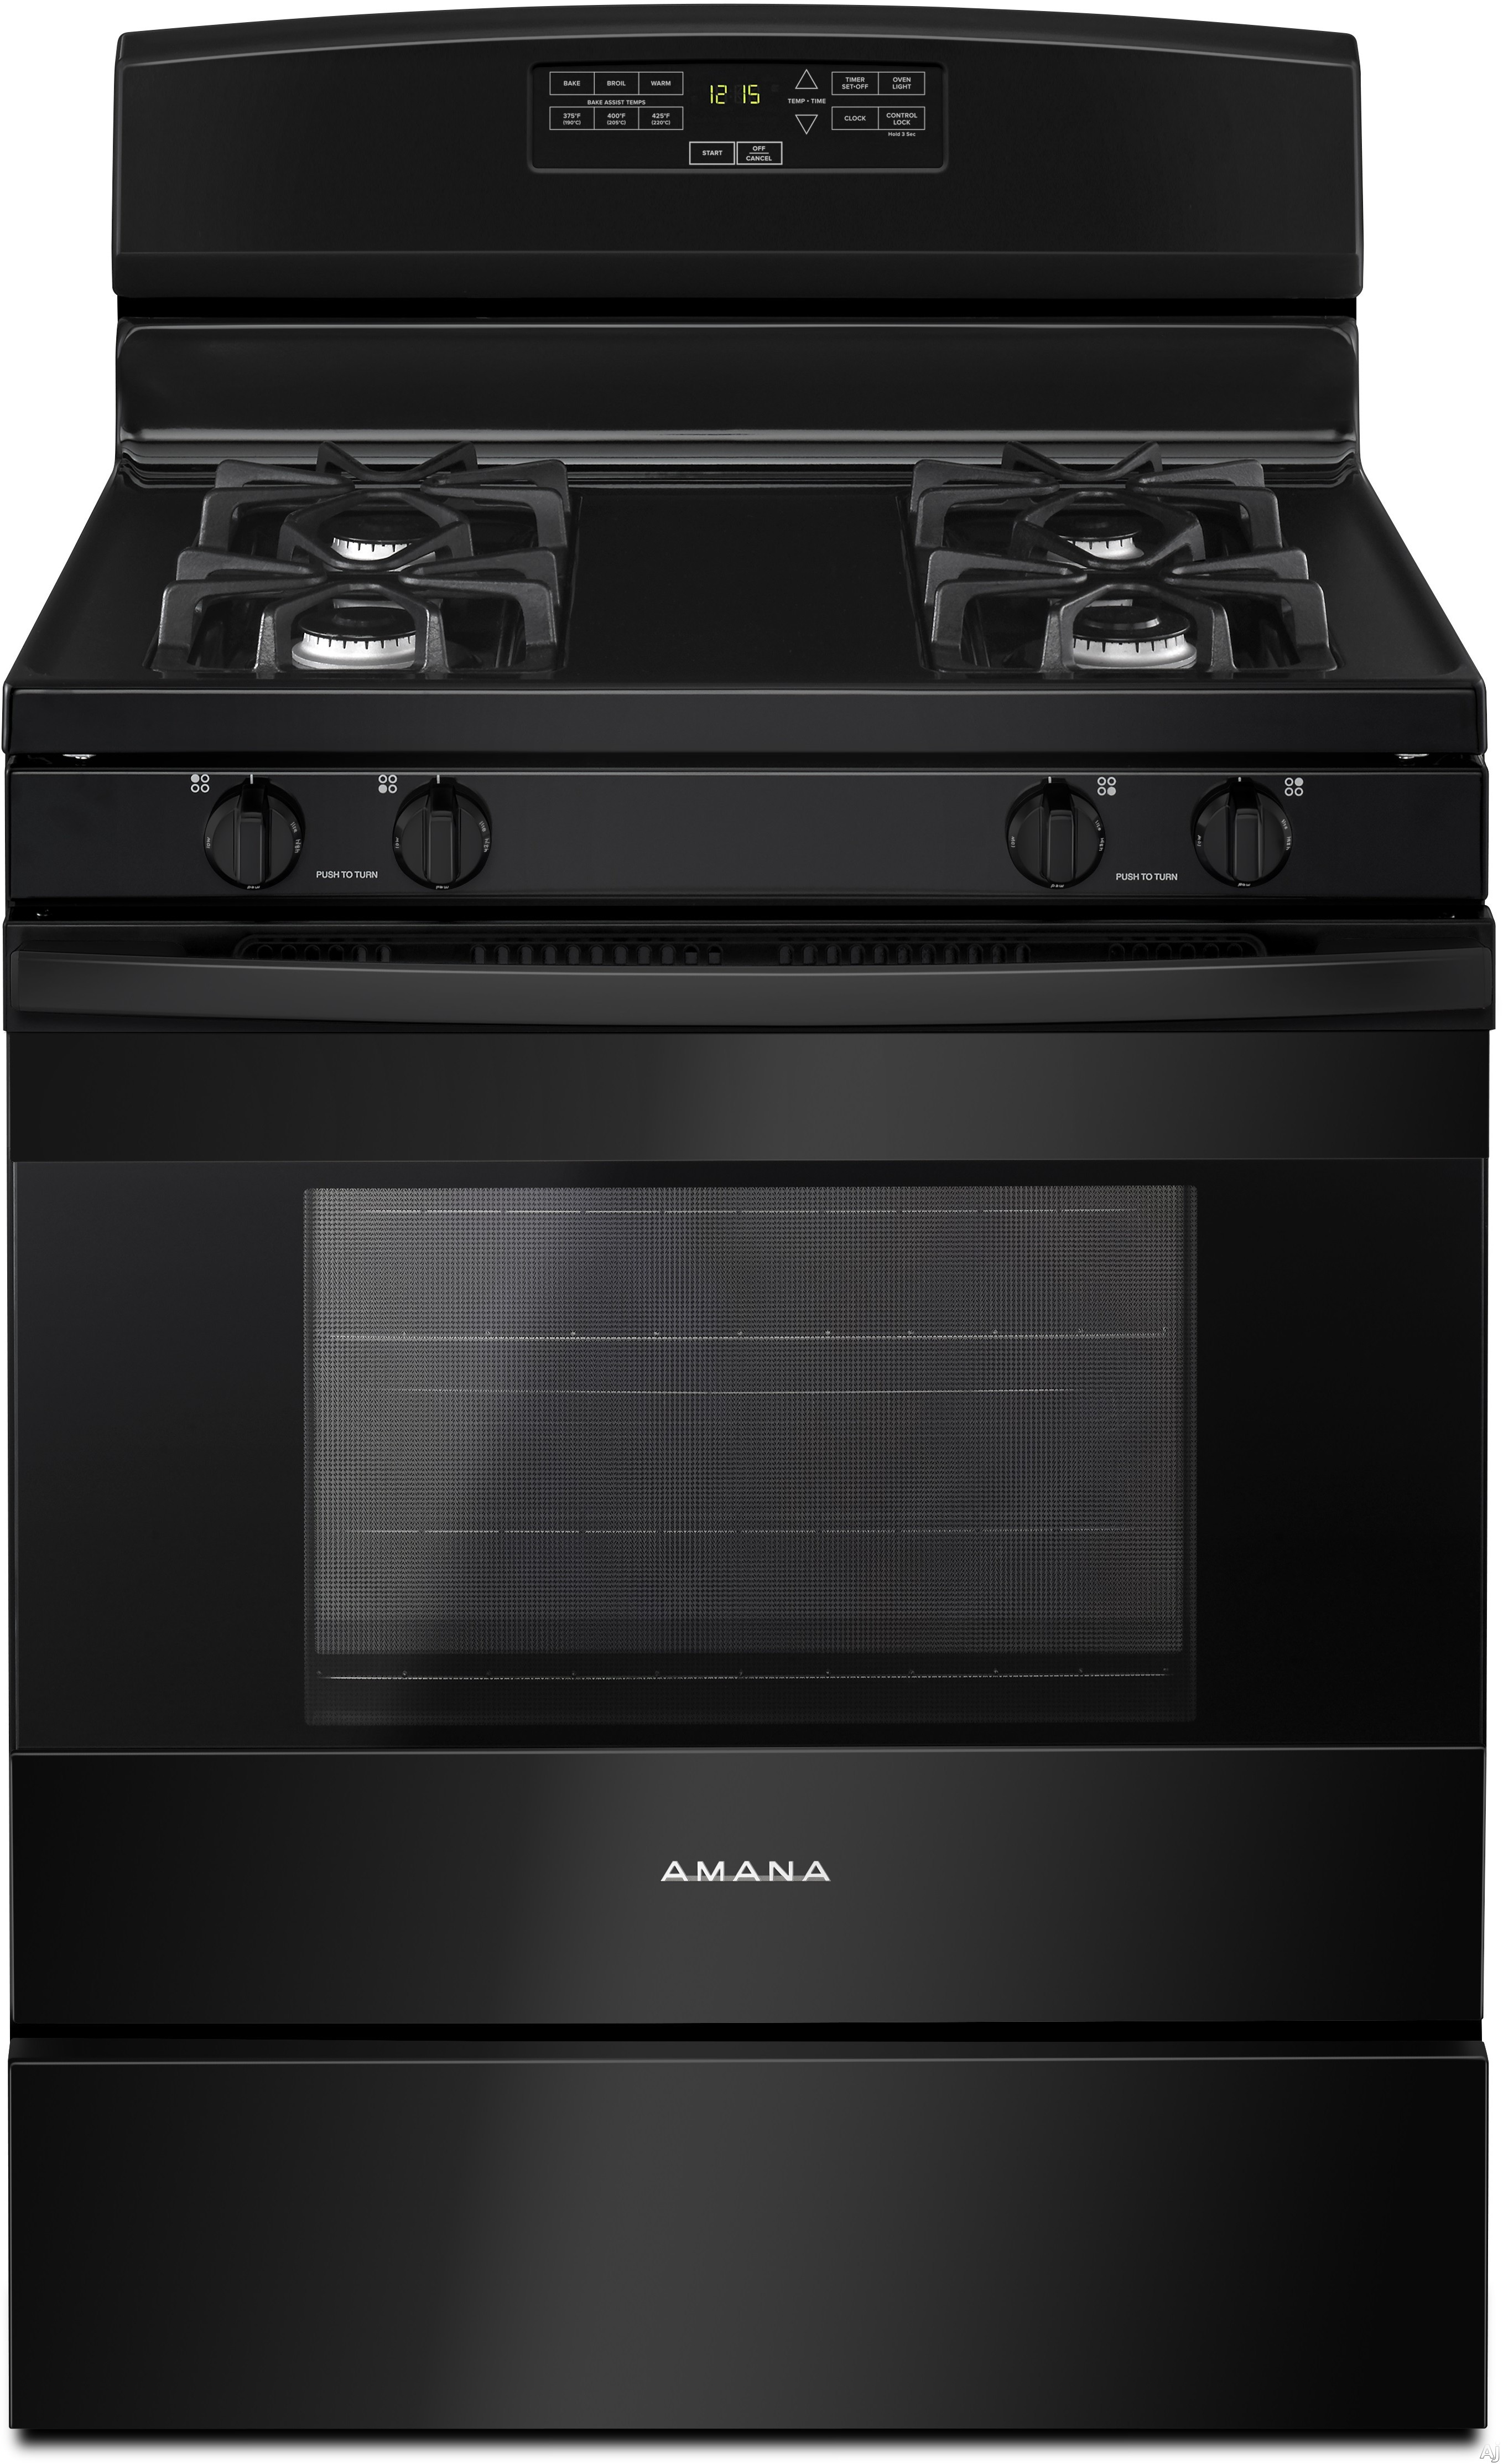 Amana Agr6303mfb 30 Inch Gas Range With Bake Assist, Easy Touch Controls, Warm Hold, 4 Sealed Burners, 5.0 Cu. Ft. Oven Capacity, Extra-large Oven Window Oven Lockout, Sabbath Mode And Storage Drawer: Black